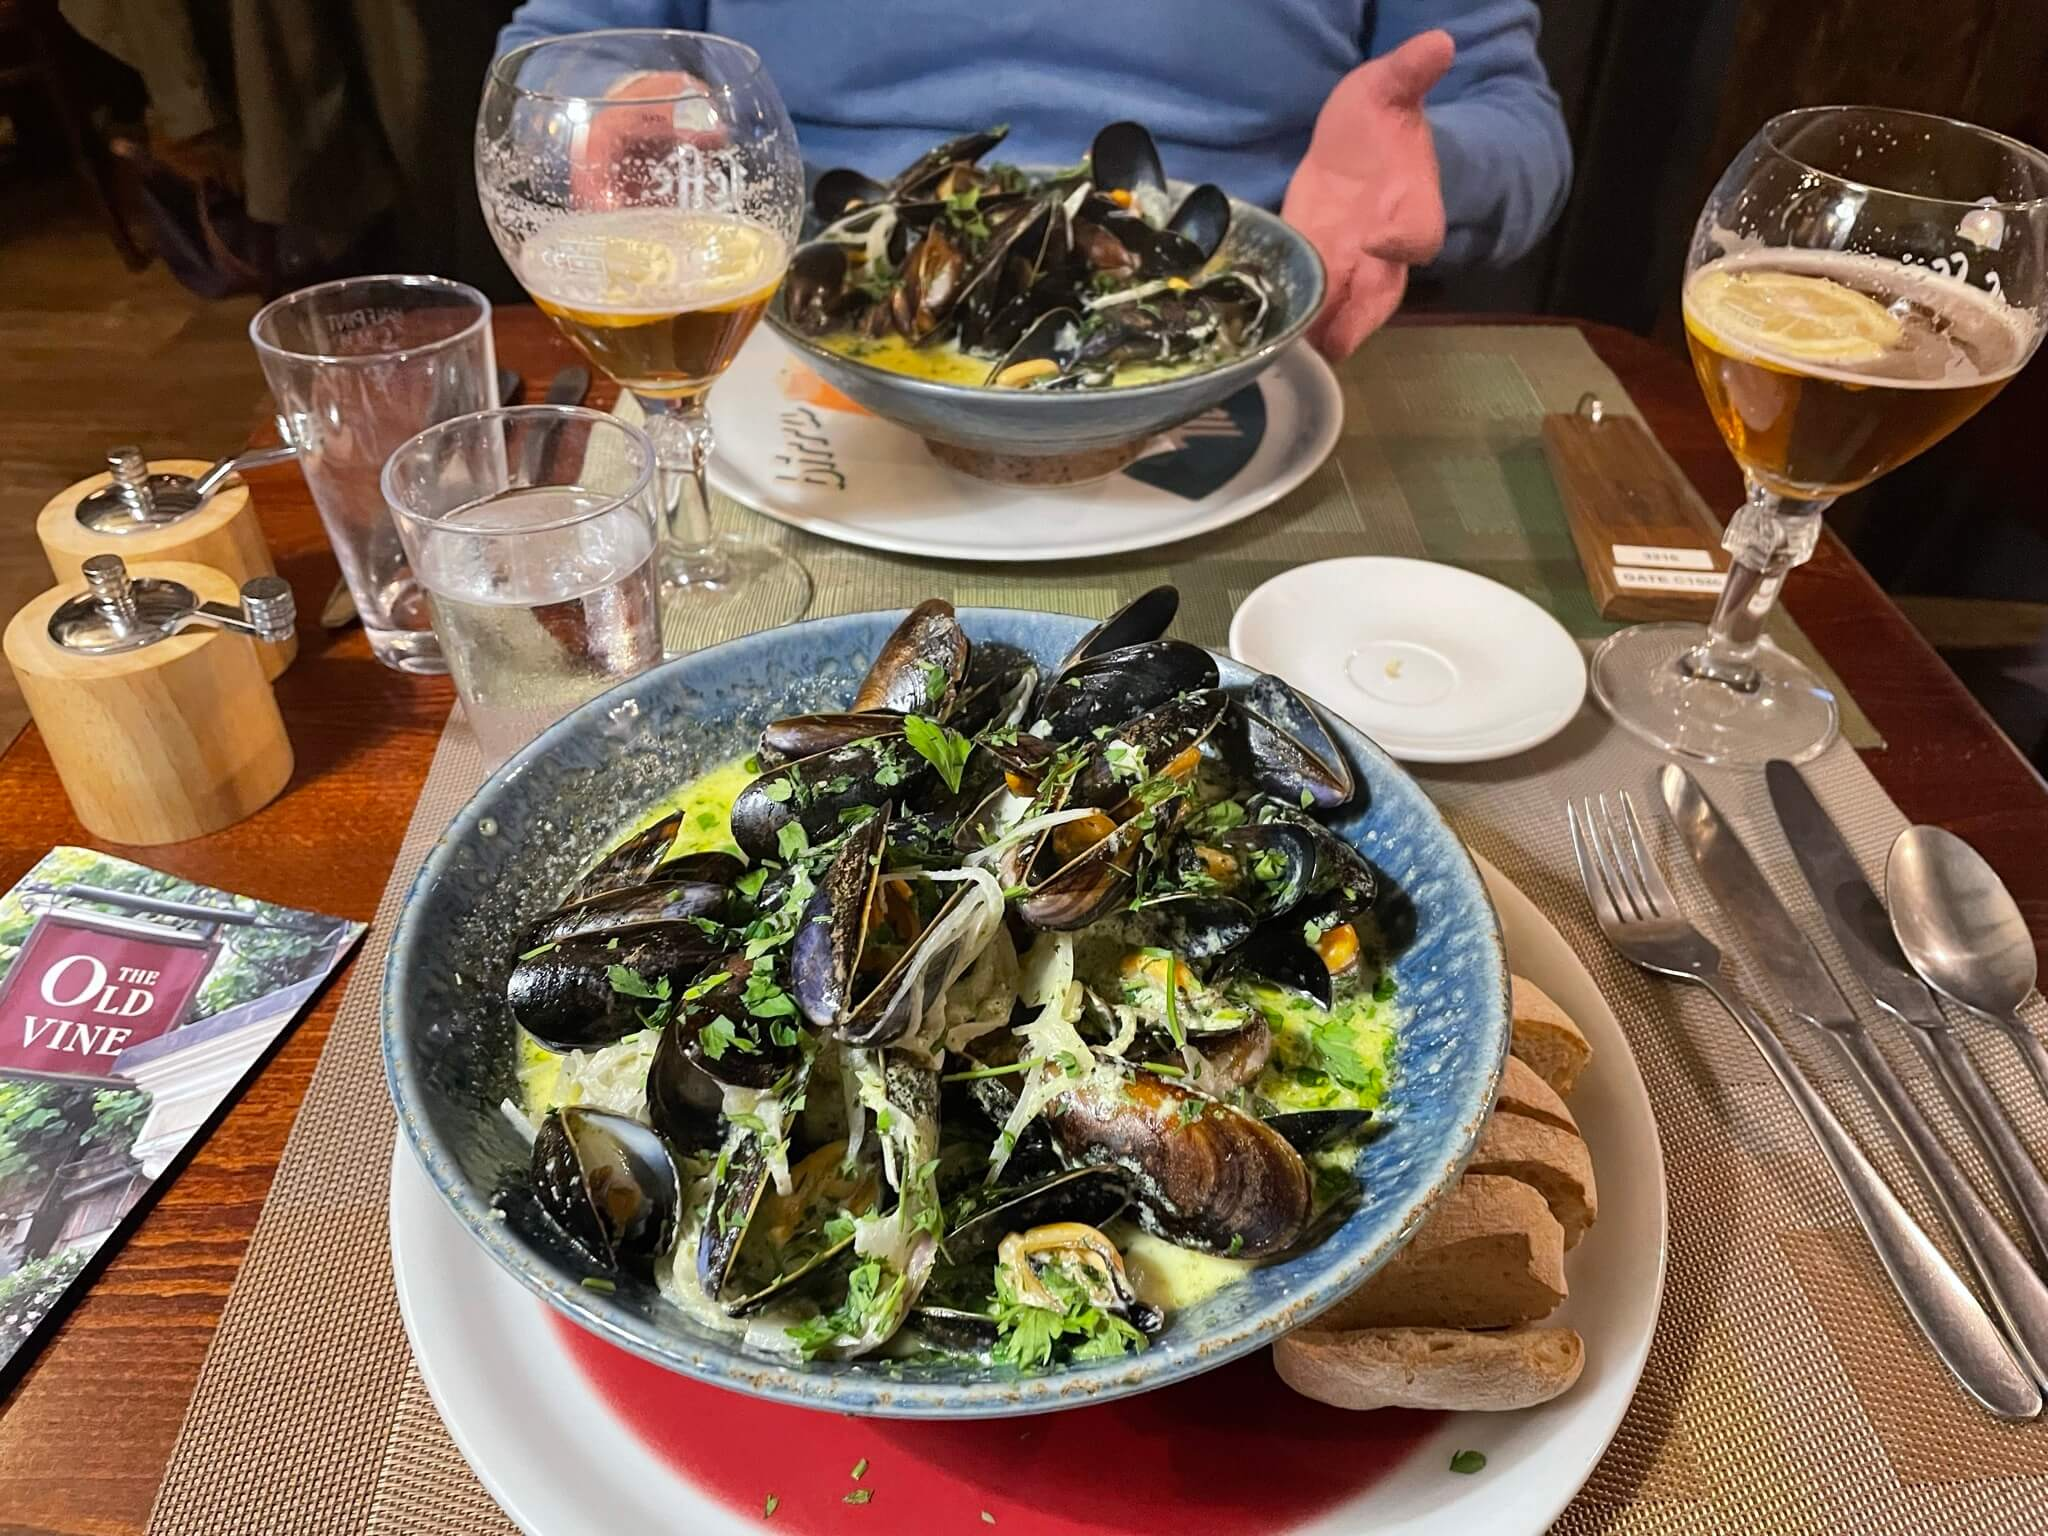 Cornish mussels with shallots, white wine and cream